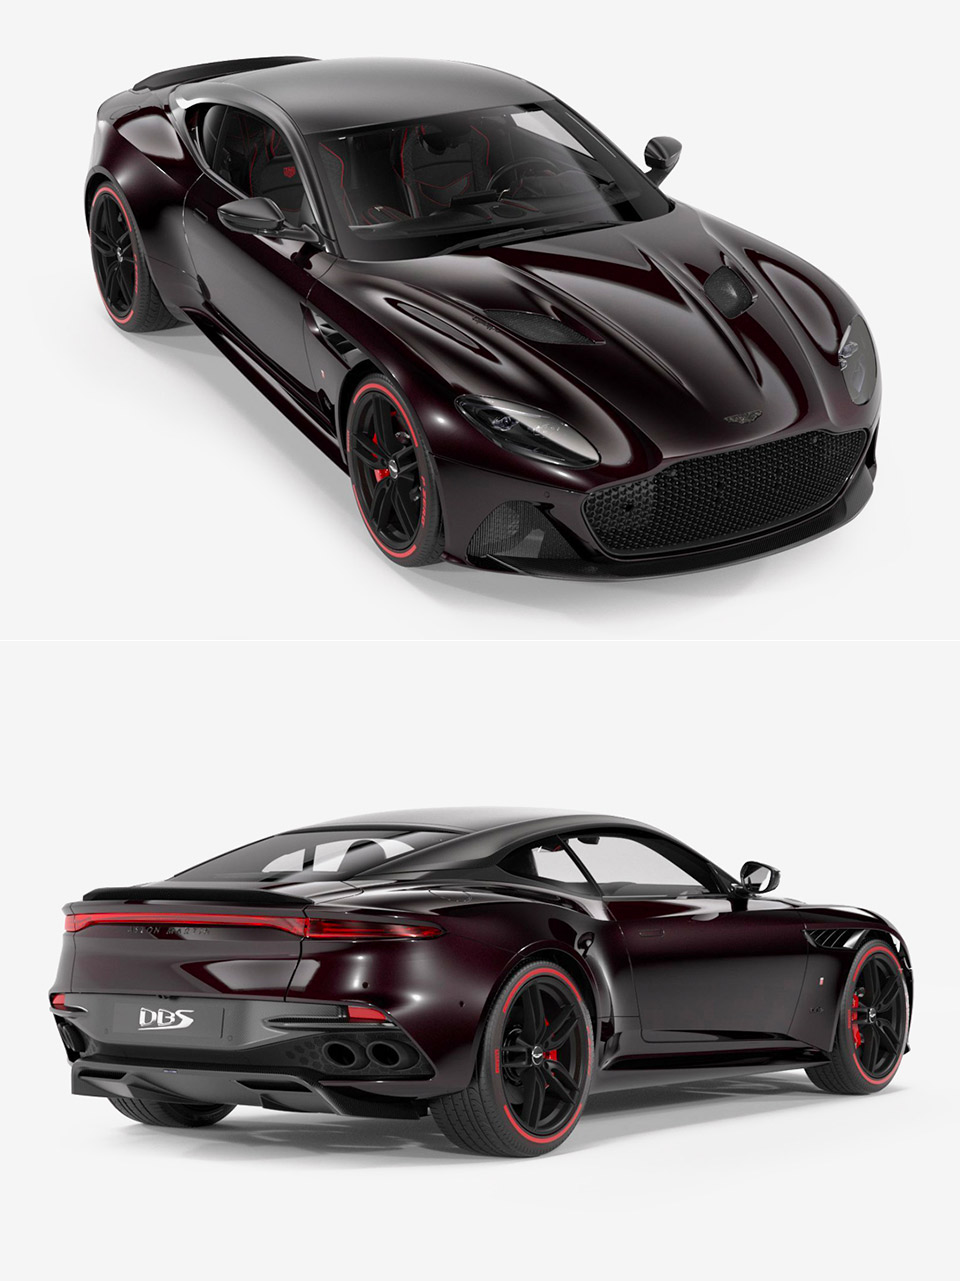 stealthy aston martin dbs superleggera tag heuer edition is perfect